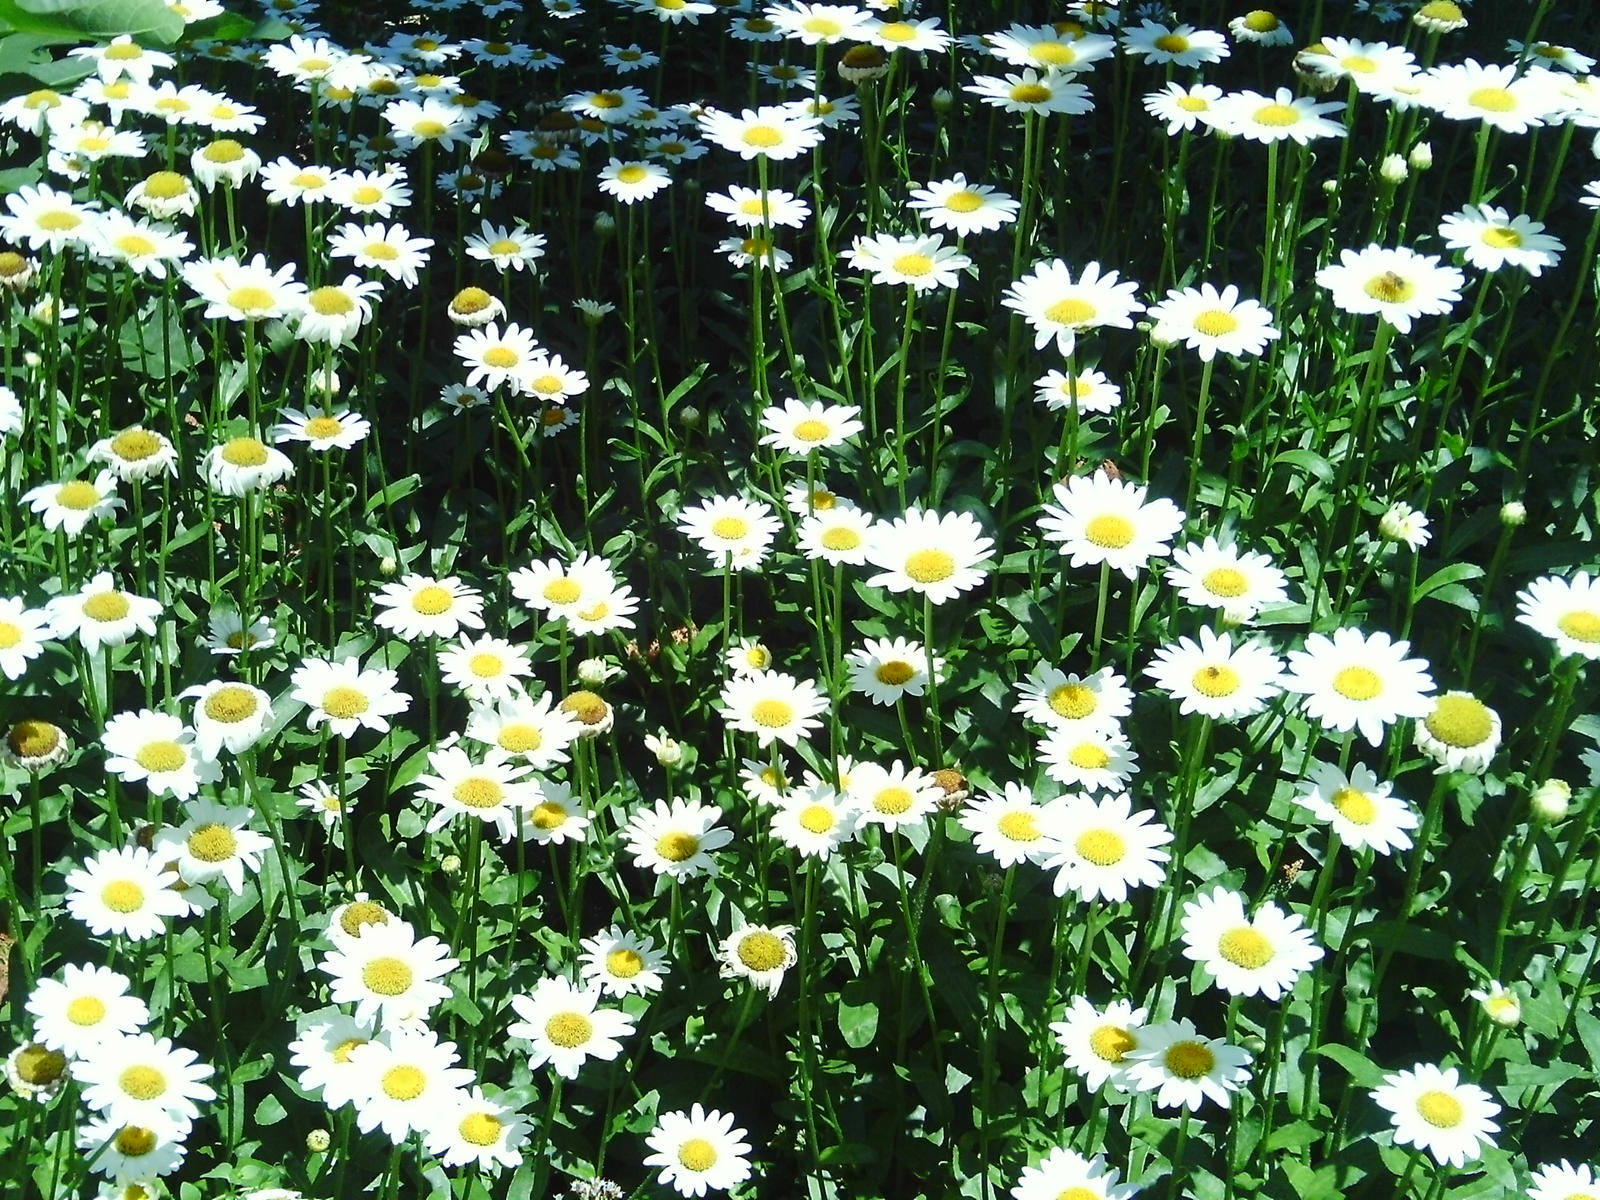 A Field of Daisies by Lucy-k on DeviantArt